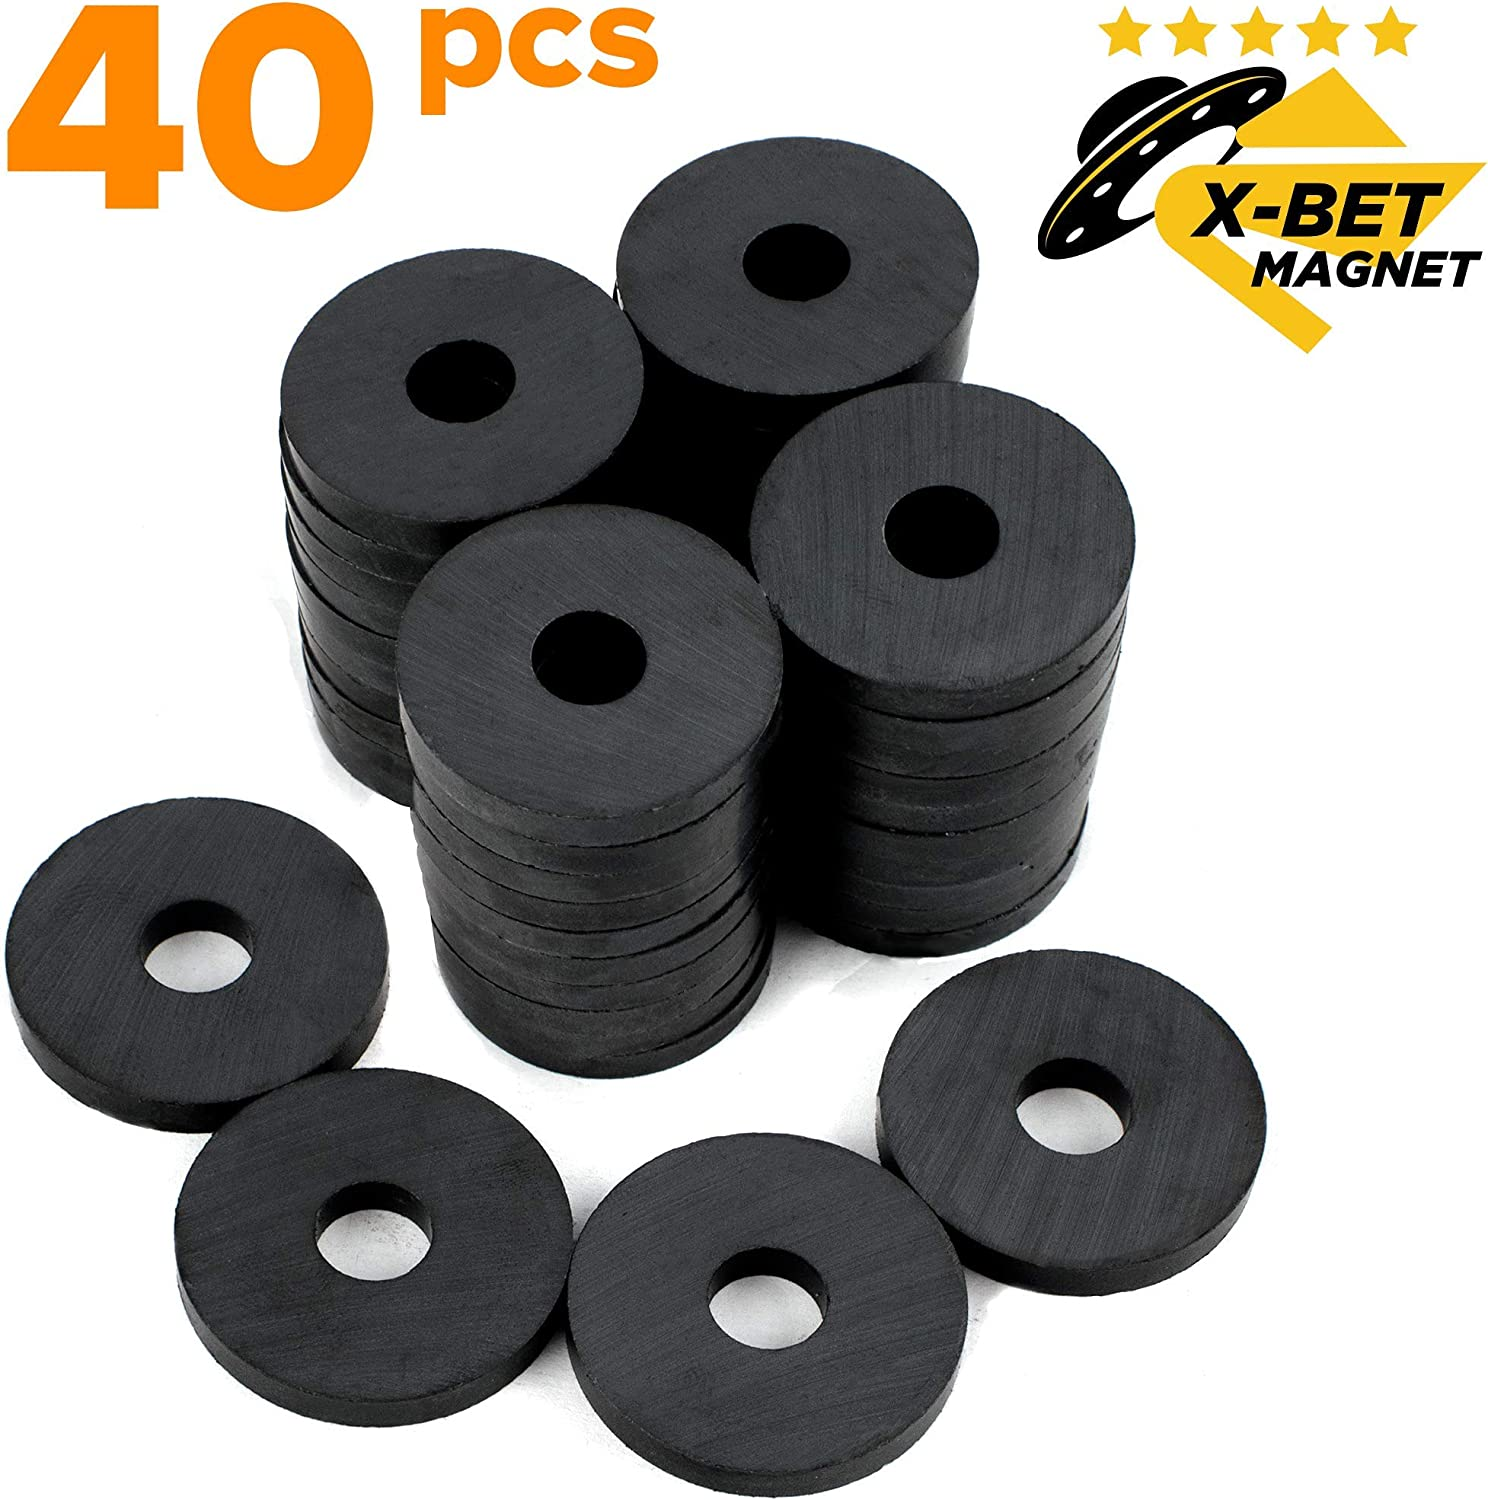 X-bet MAGNET ™ - Round Ceramic Disc Magnets with Hole - Tiny Ring Bulk Lot of 40 Pcs - 1.2 Inch (31mm) - Donut Magnets for Refrigerator Fridge, Science Projects, Crafts, Around The Office